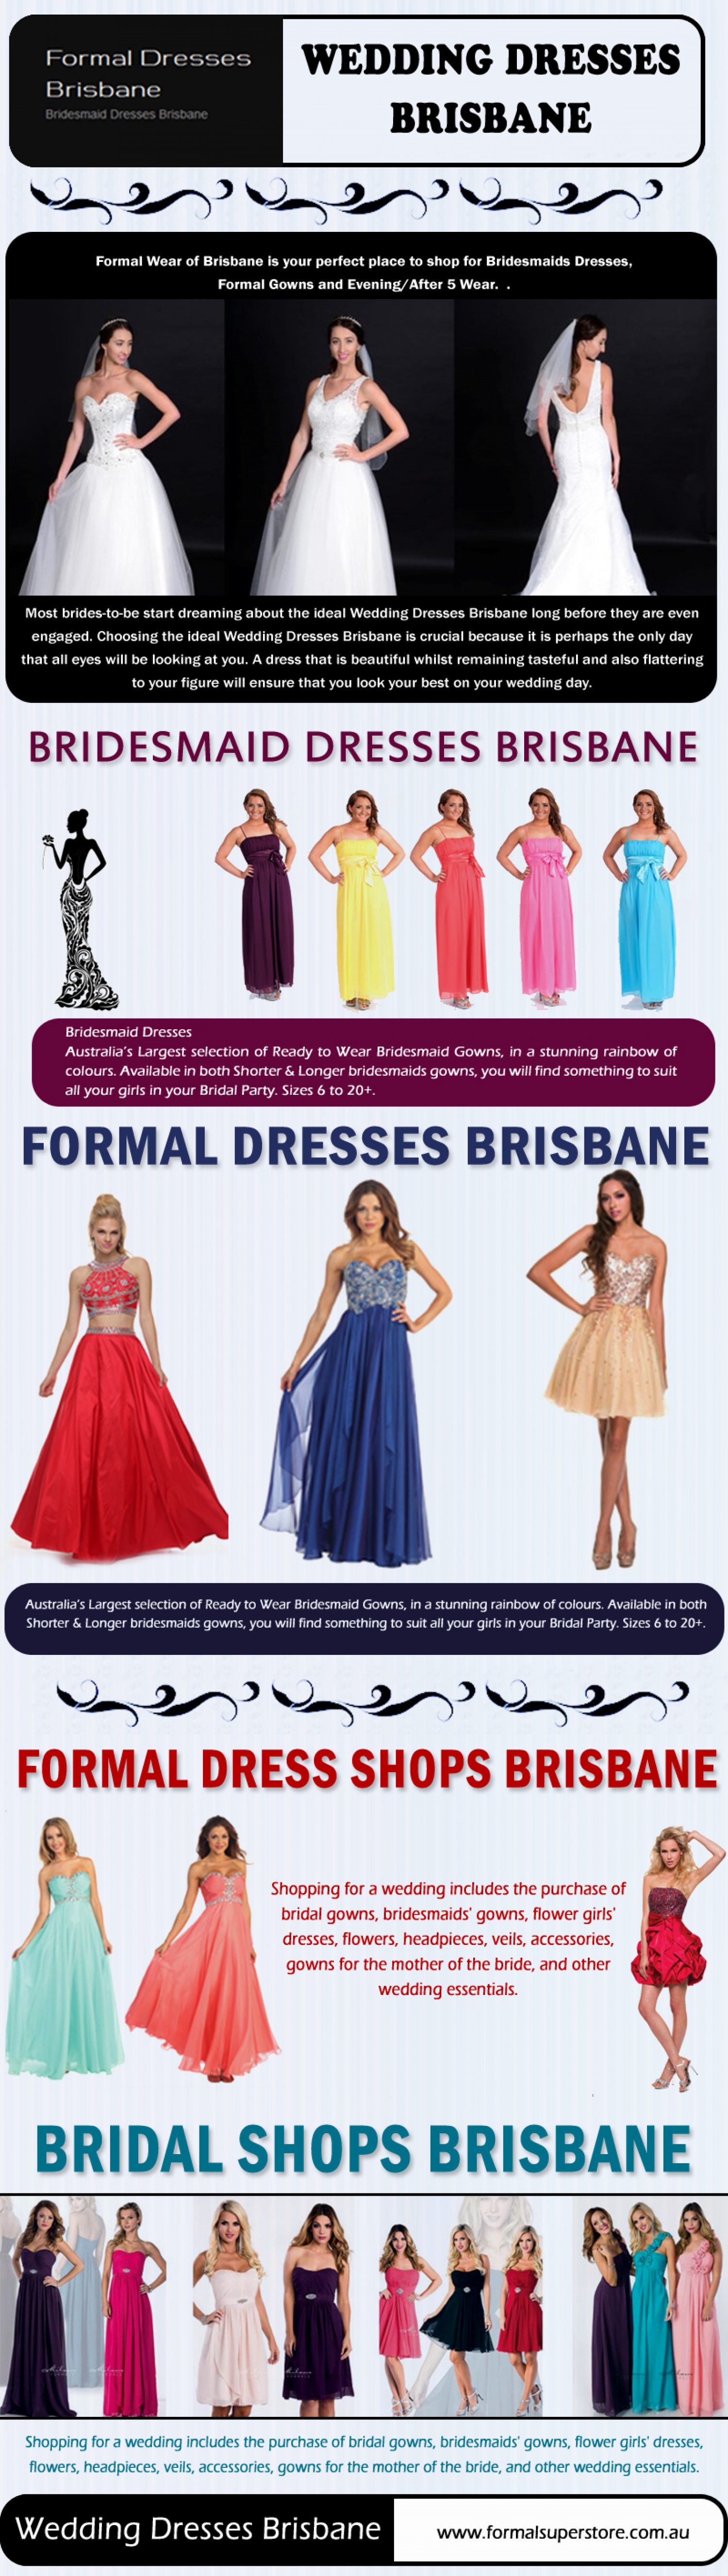 Getting married in Gold Coast or Brisbane? Find the perfect bridesmaid dresses at Pearl Bridal. With a gorgeous selection of bridesmaid dresses from renowned designers including Jadore, Tina Holy and more, Pearl Bridal will leave you spoilt for choice.